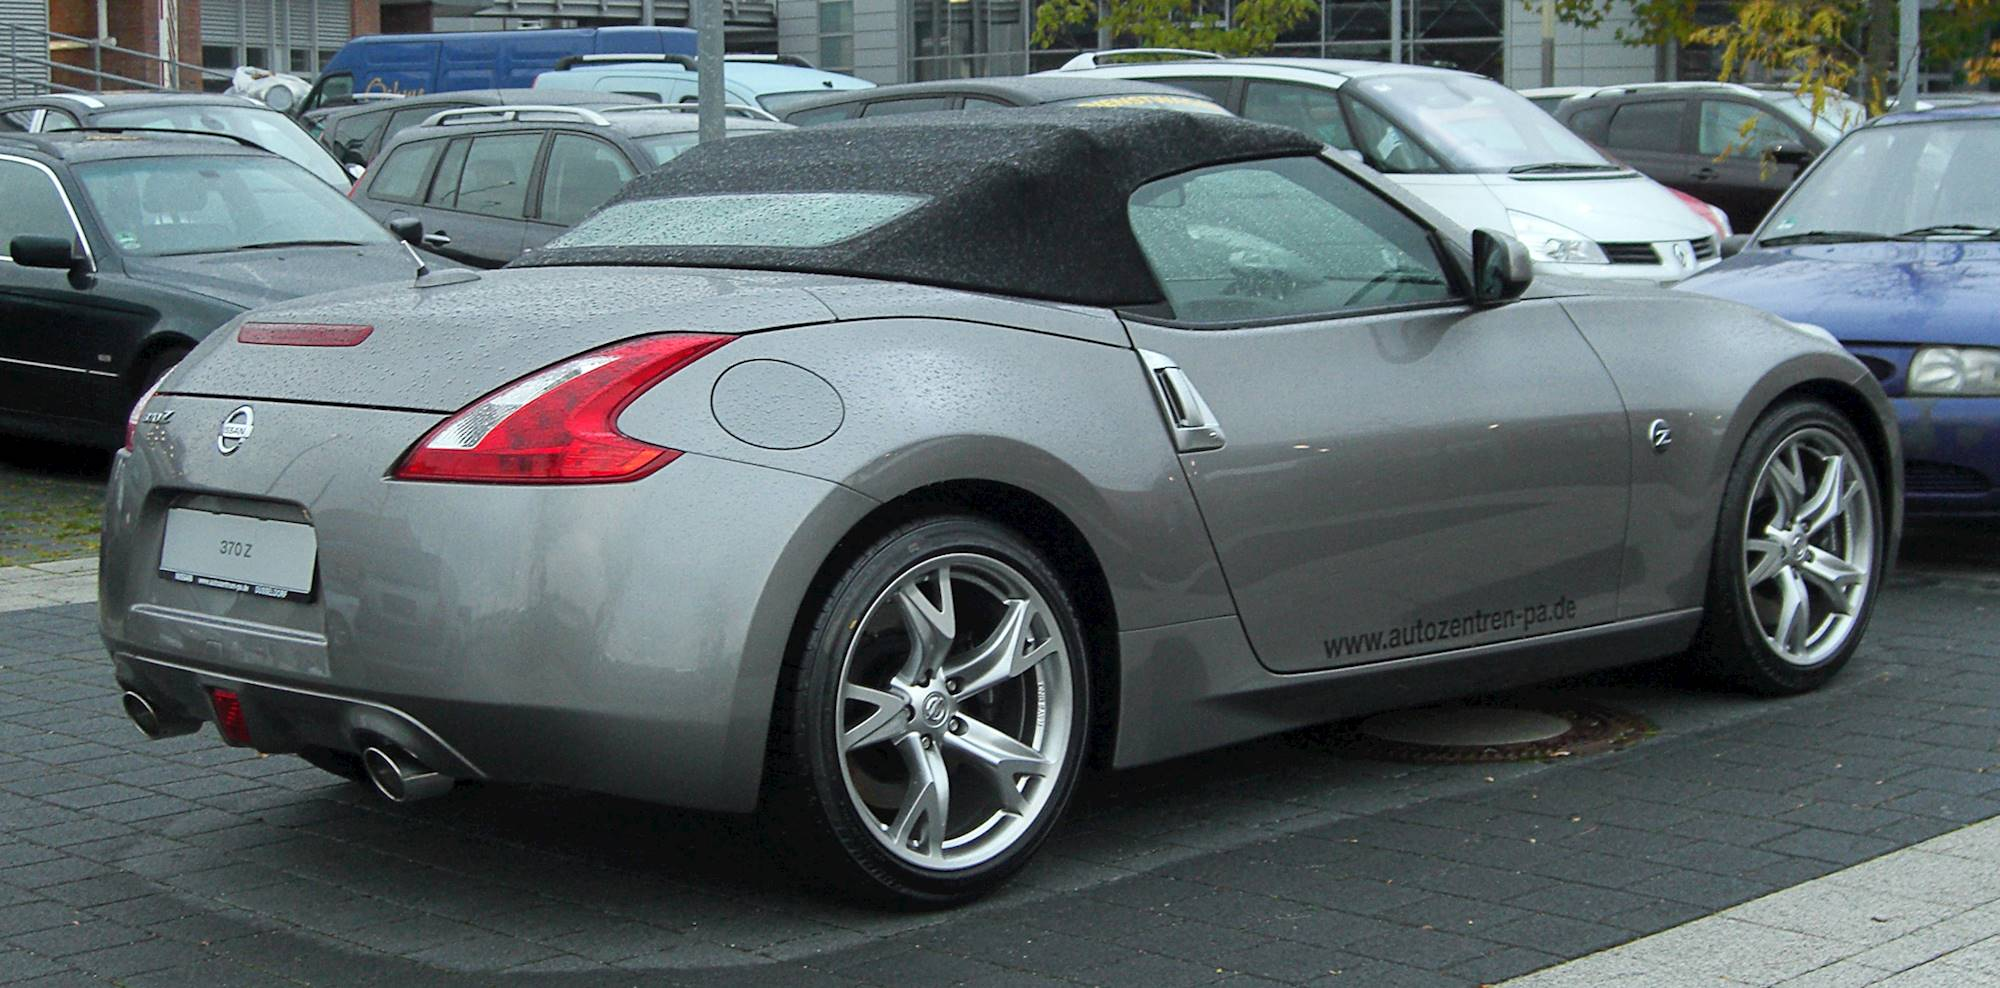 2010 Nissan 370z Nismo Coupe 3 7l V6 Manual